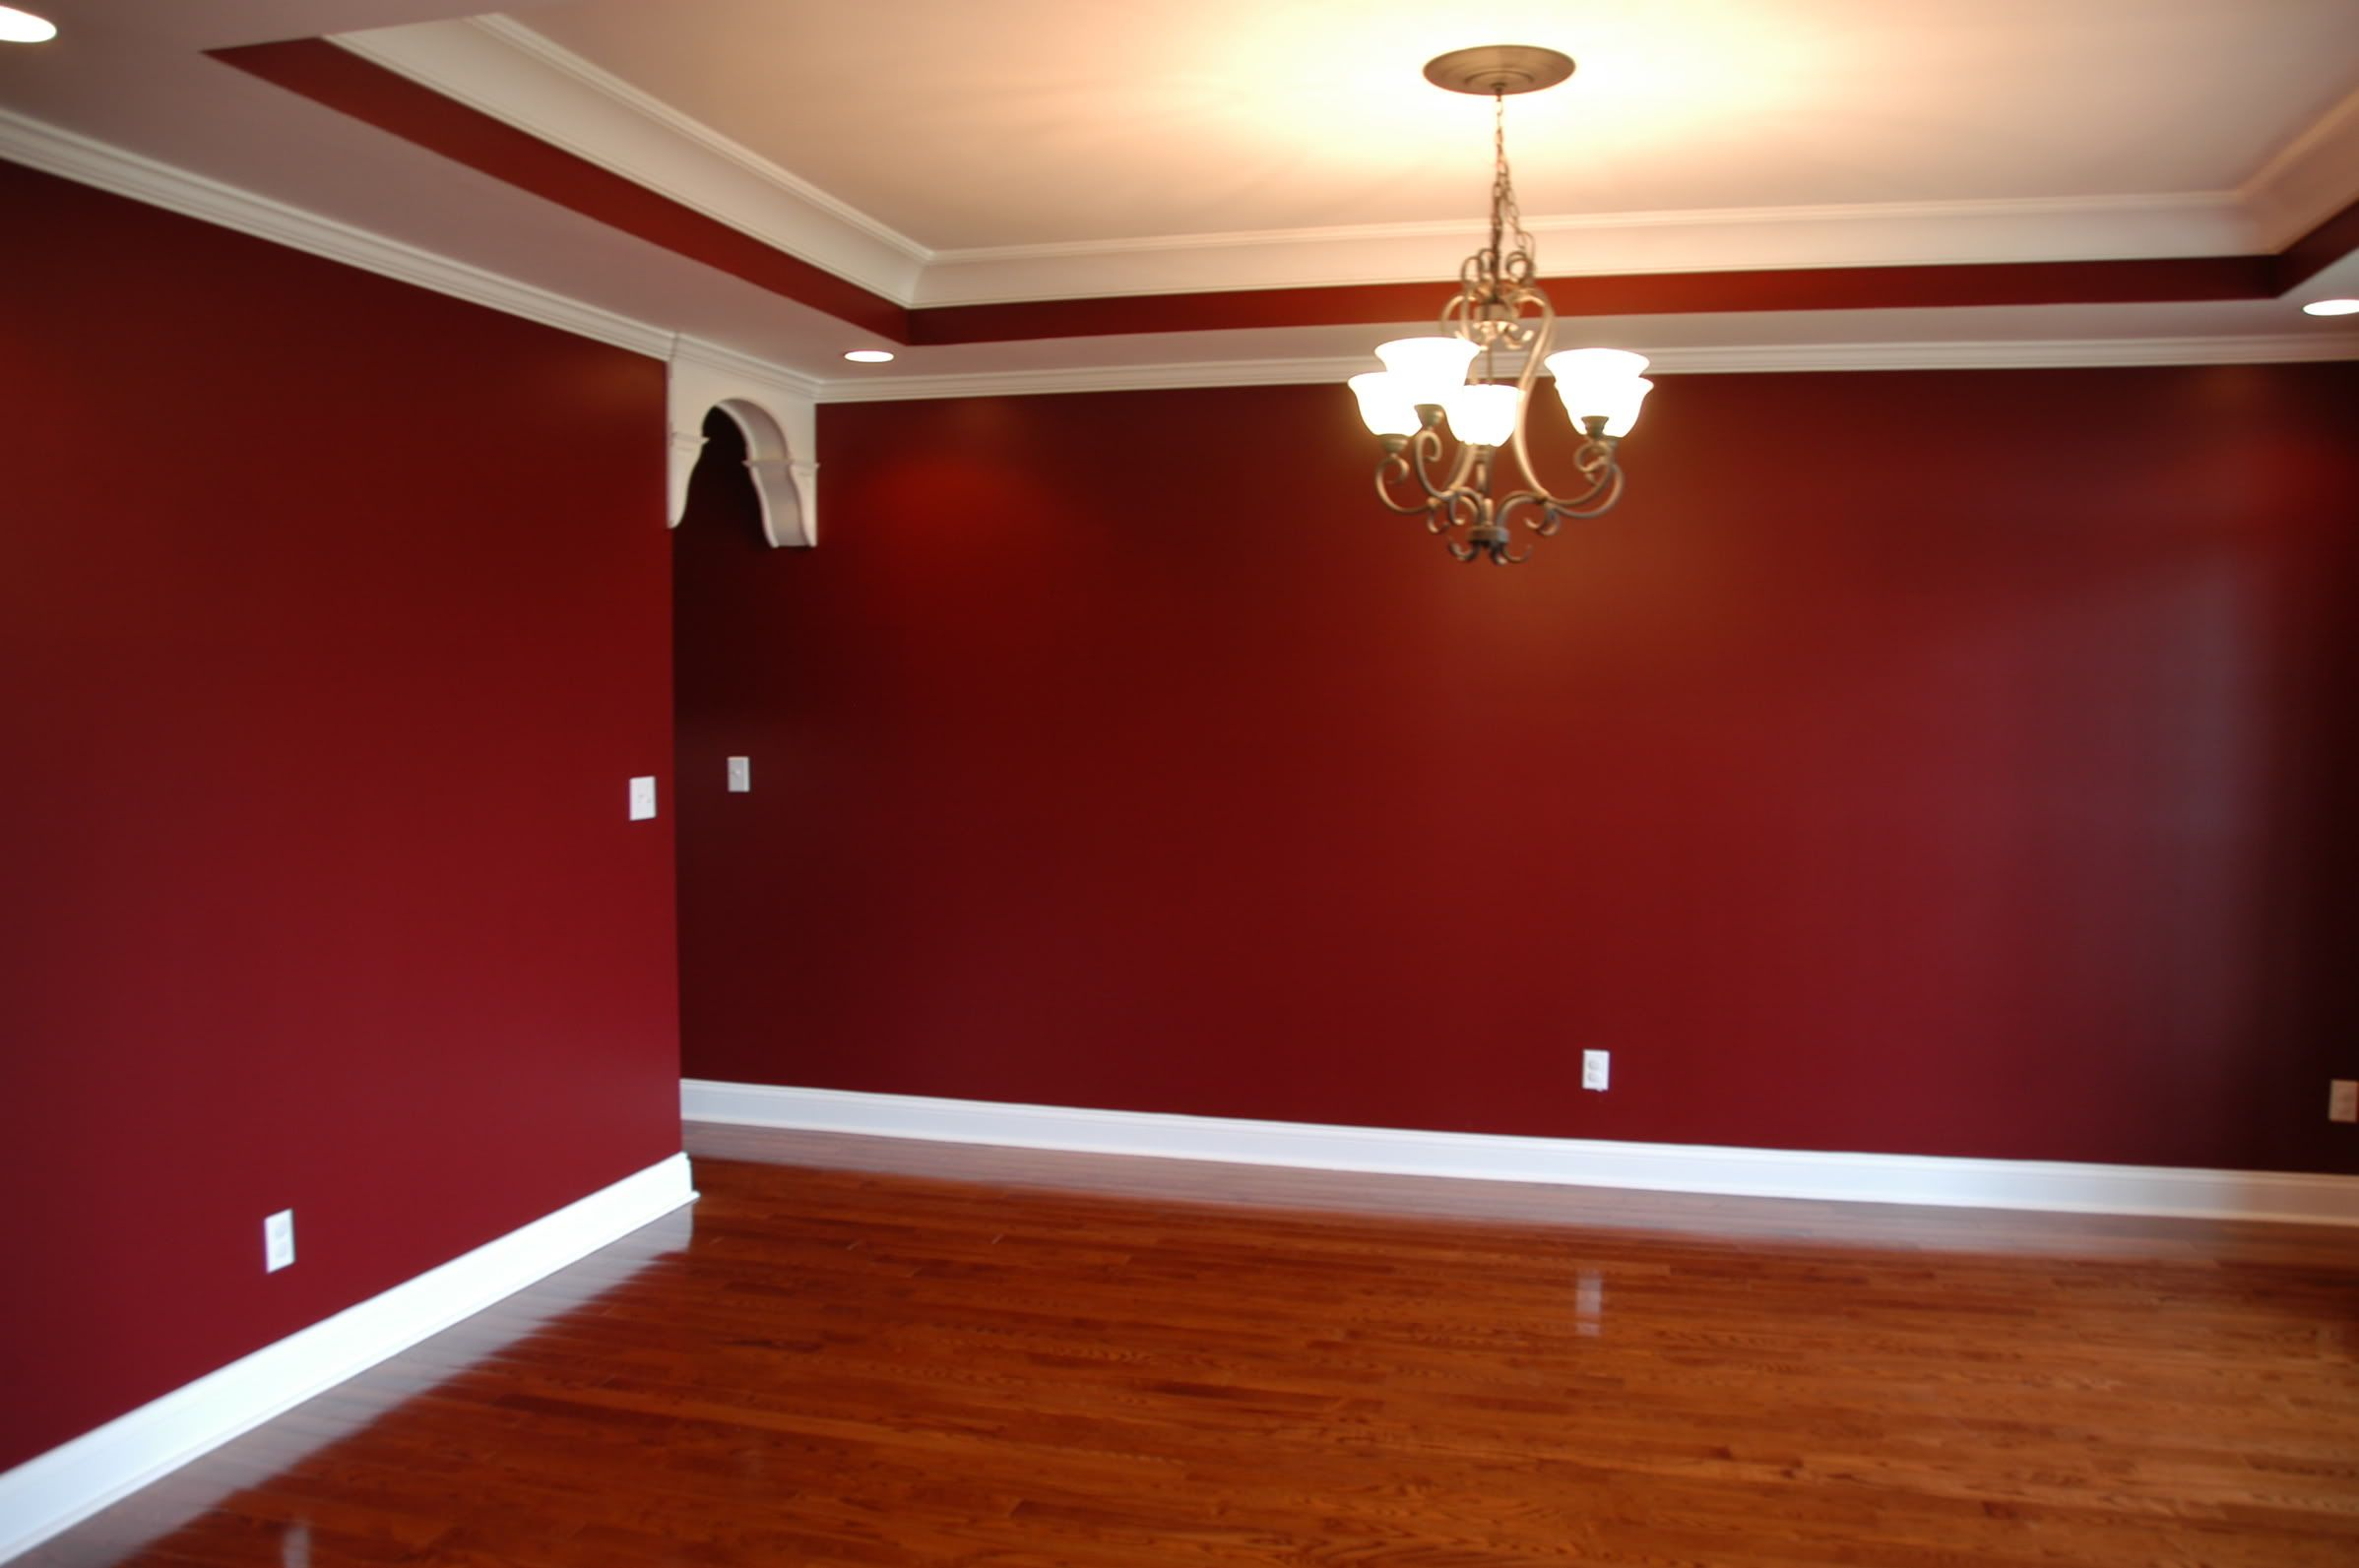 astounding red bedroom walls will | How to Stencil a Wall, Dining Room Project | Living room ...